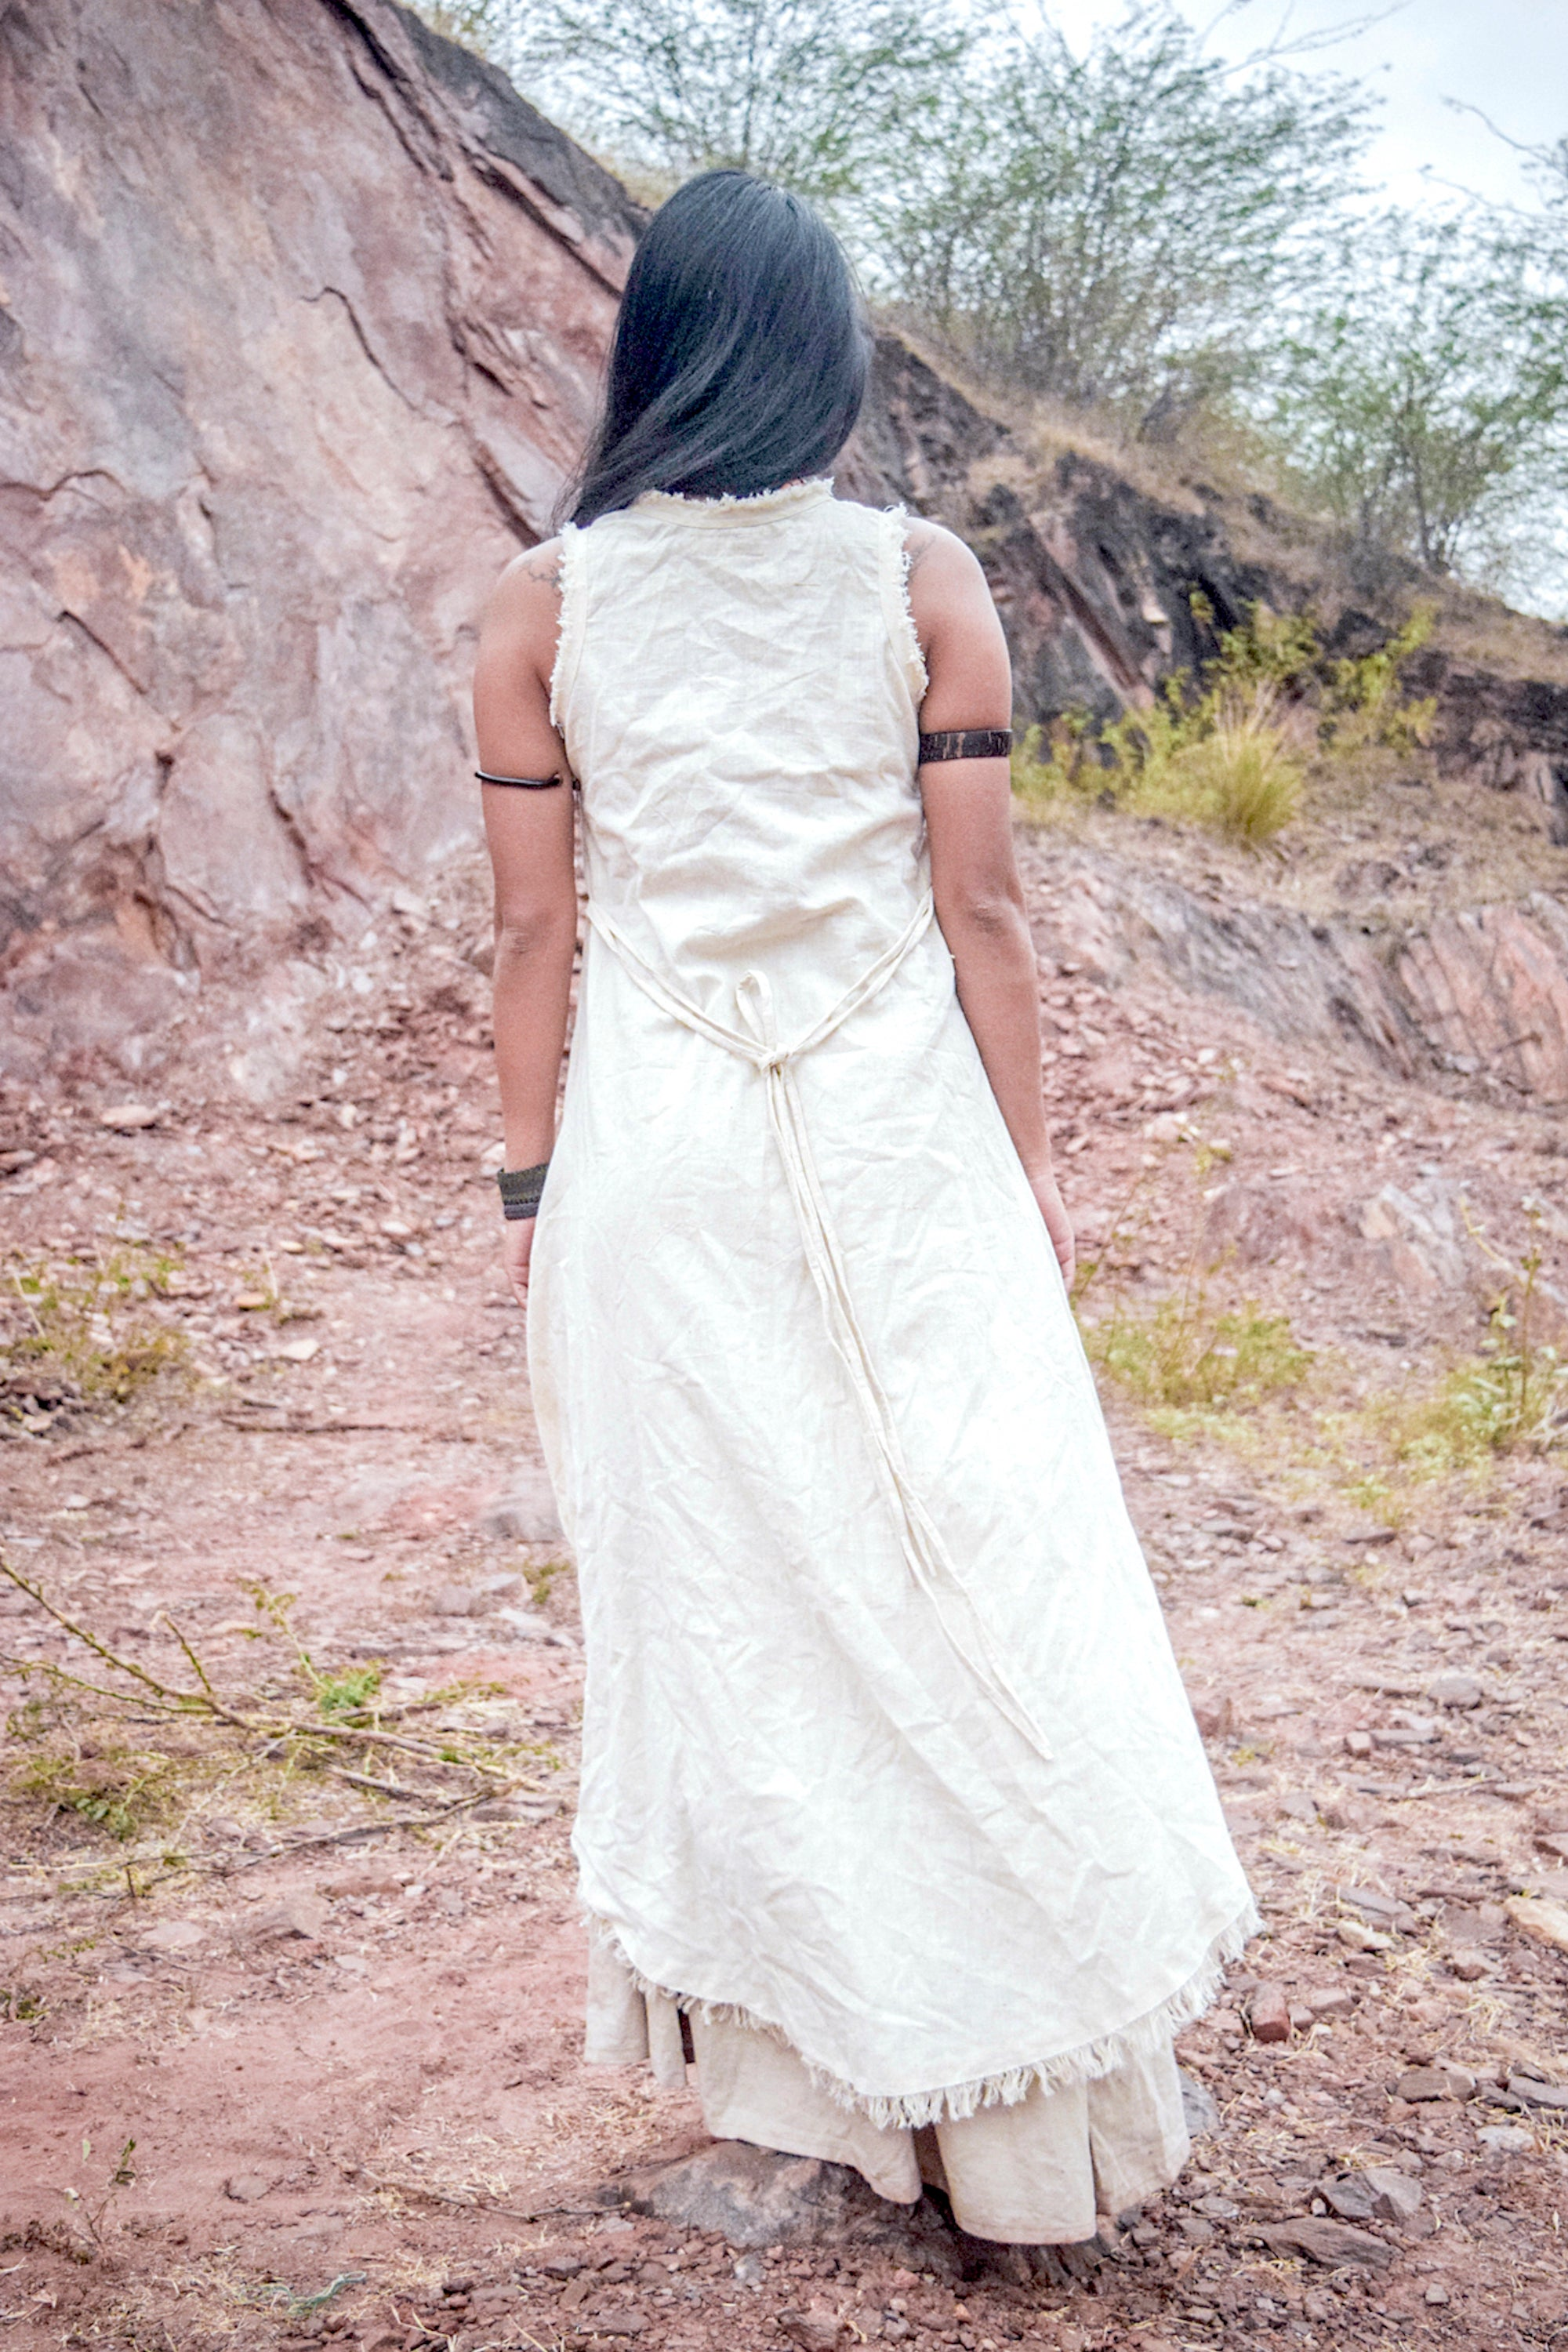 Asymmetrical Sleeveless Dress ⋙ Natural Handwoven Khadi Cotton